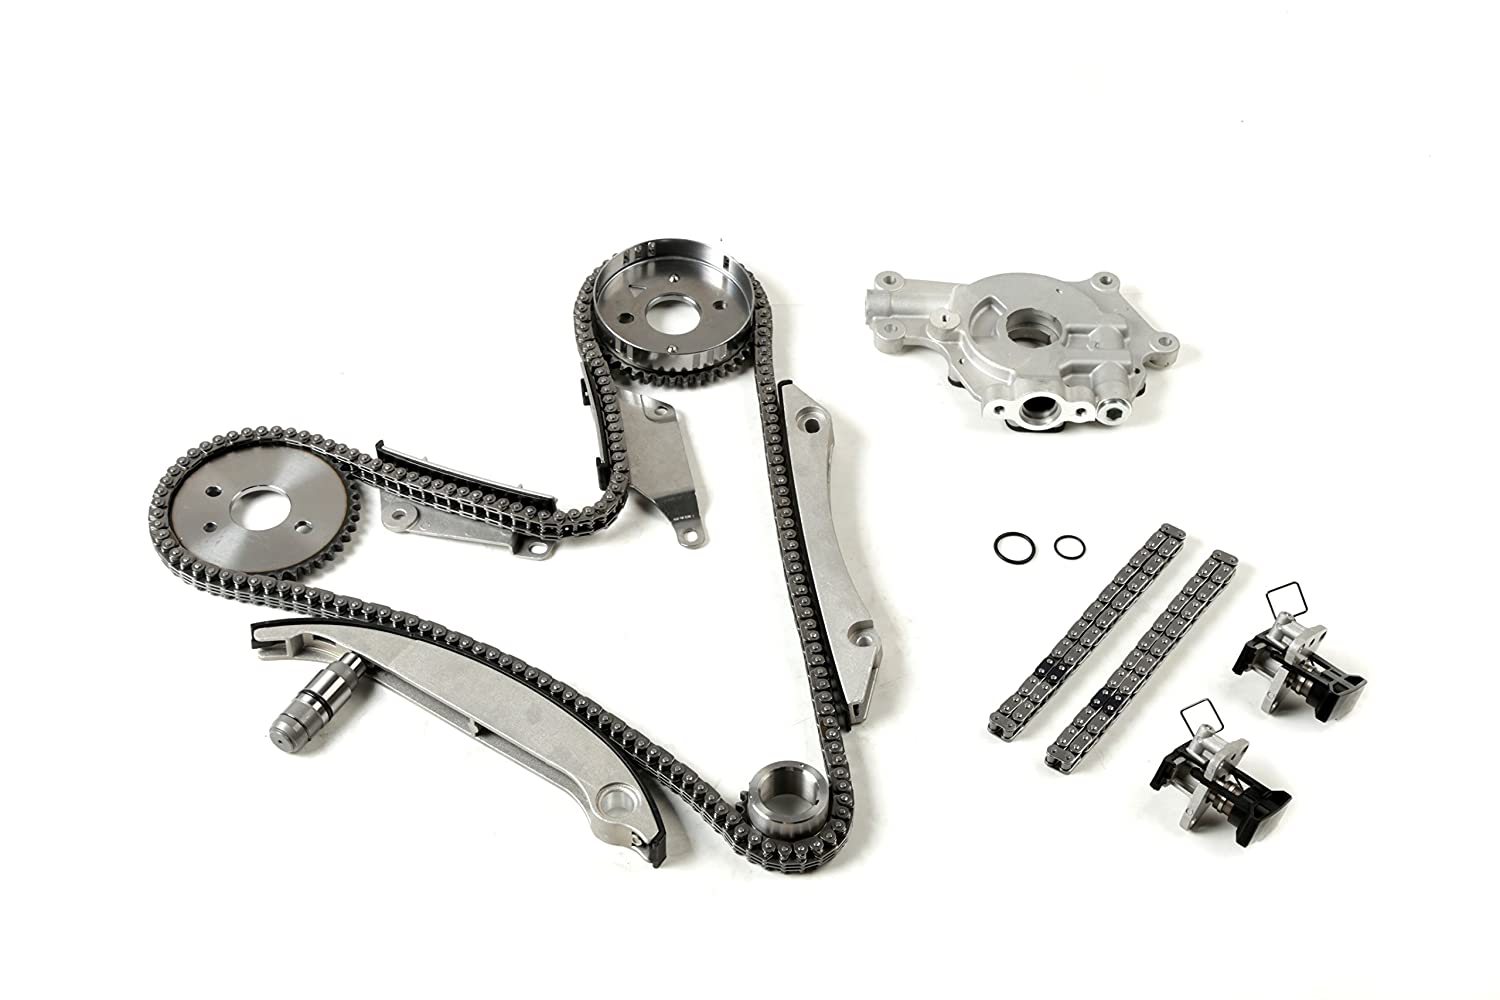 MOCA Timing Chain Kit Oil Pump Kit for 2002-2007 Chrysler Concorde Sebring 300 & Dodge Intrepid & Dodge Charger Stratus 2.7L V6 24V DOHC R OELINE Auto Parts